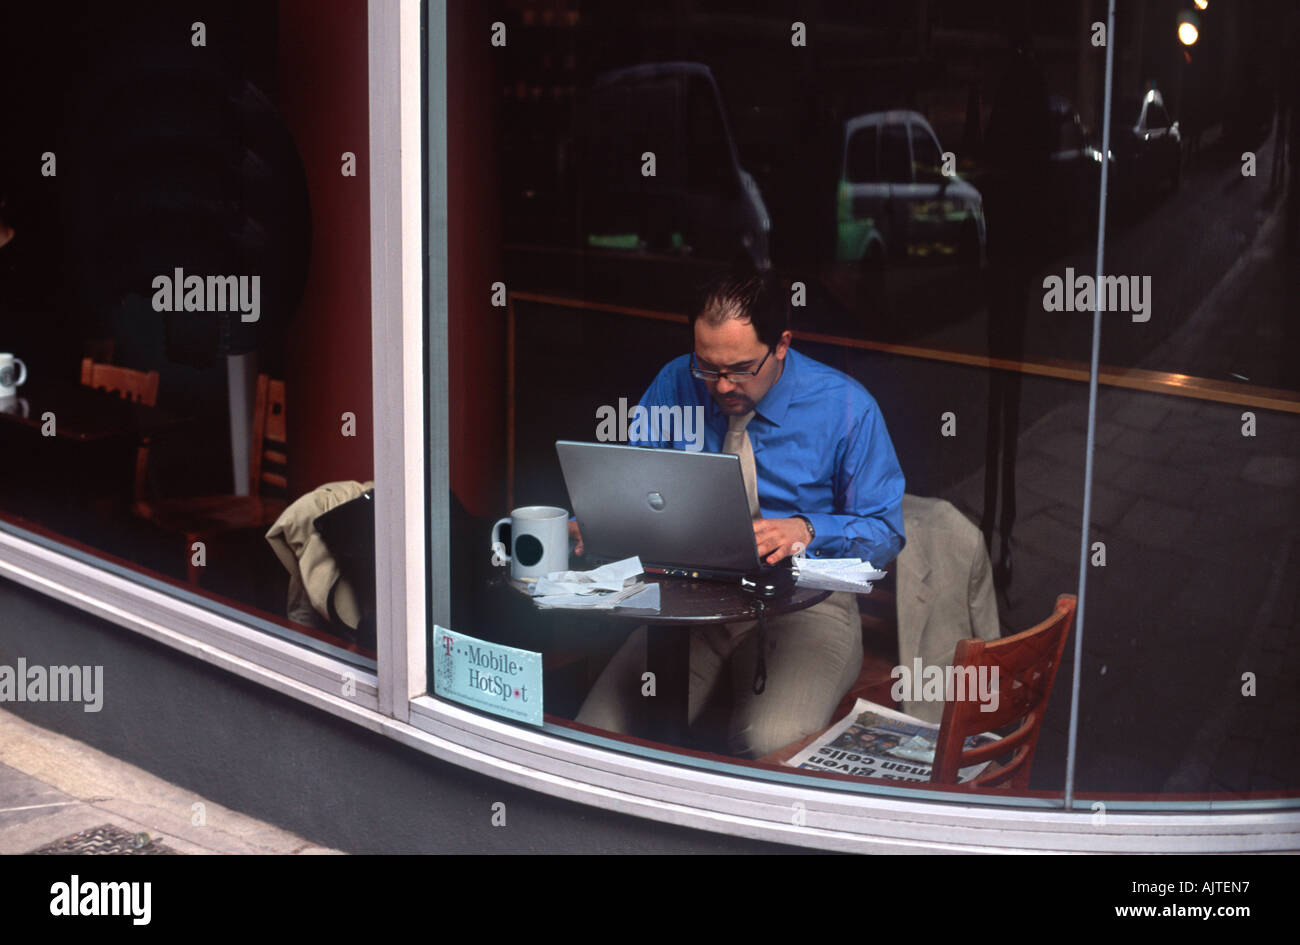 No-logo-version: Wireless mobile worker keying intently at a laptop computer in the window of a coffee shop, City of London - Stock Image